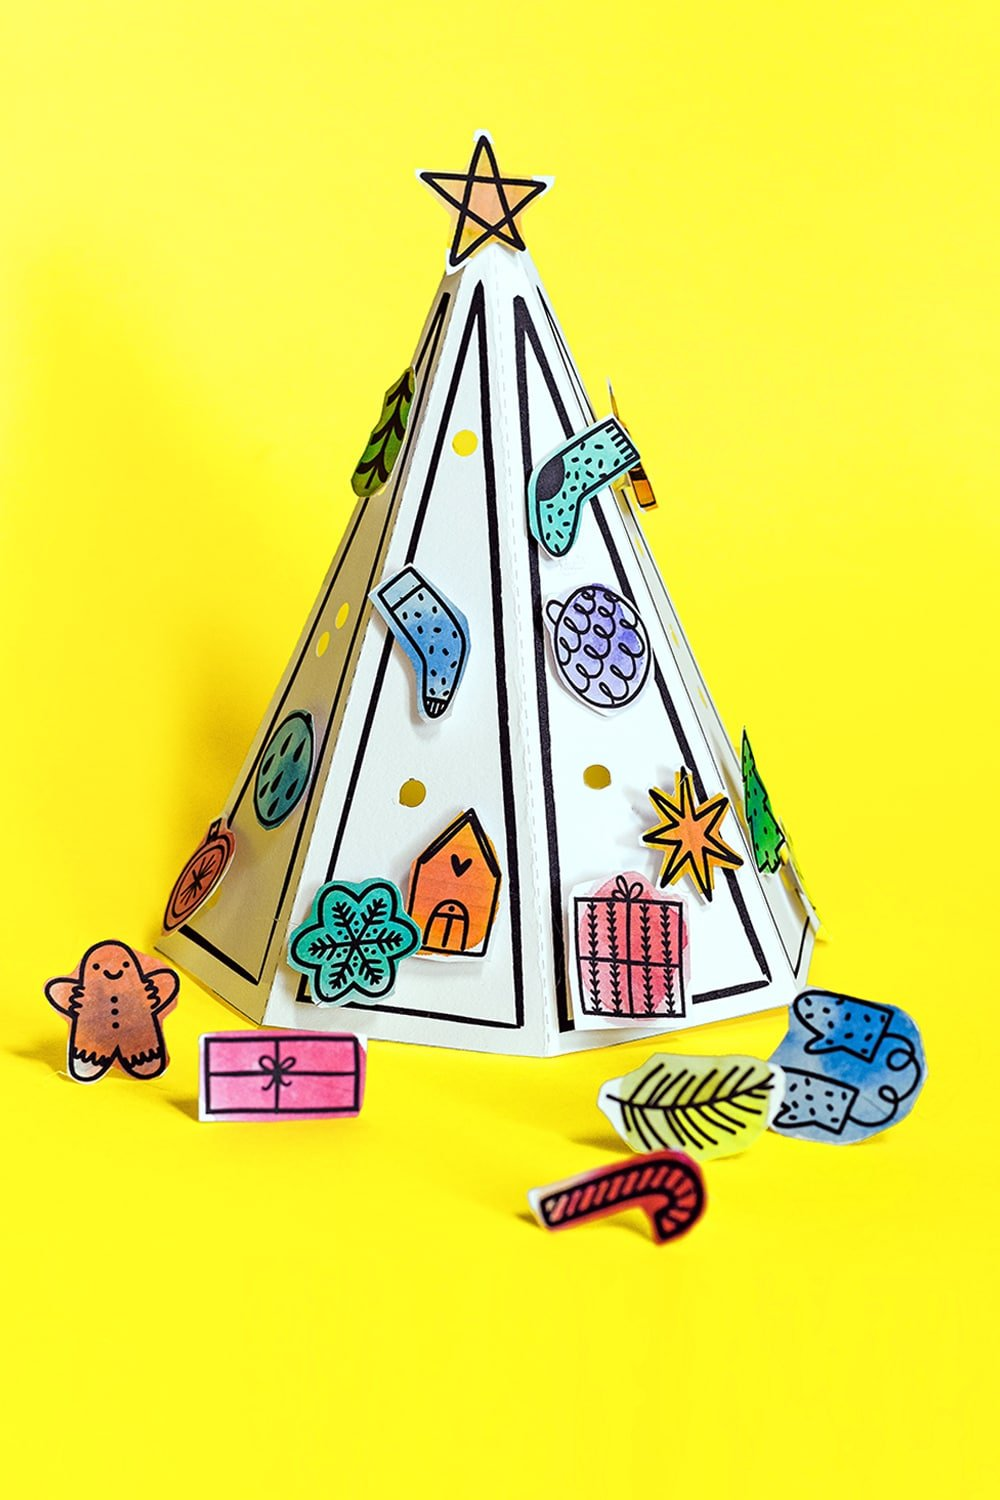 Our 3D paper tree Advent calendar with pop-in ornaments is a fun holiday art activity for kids! | via barley & birch